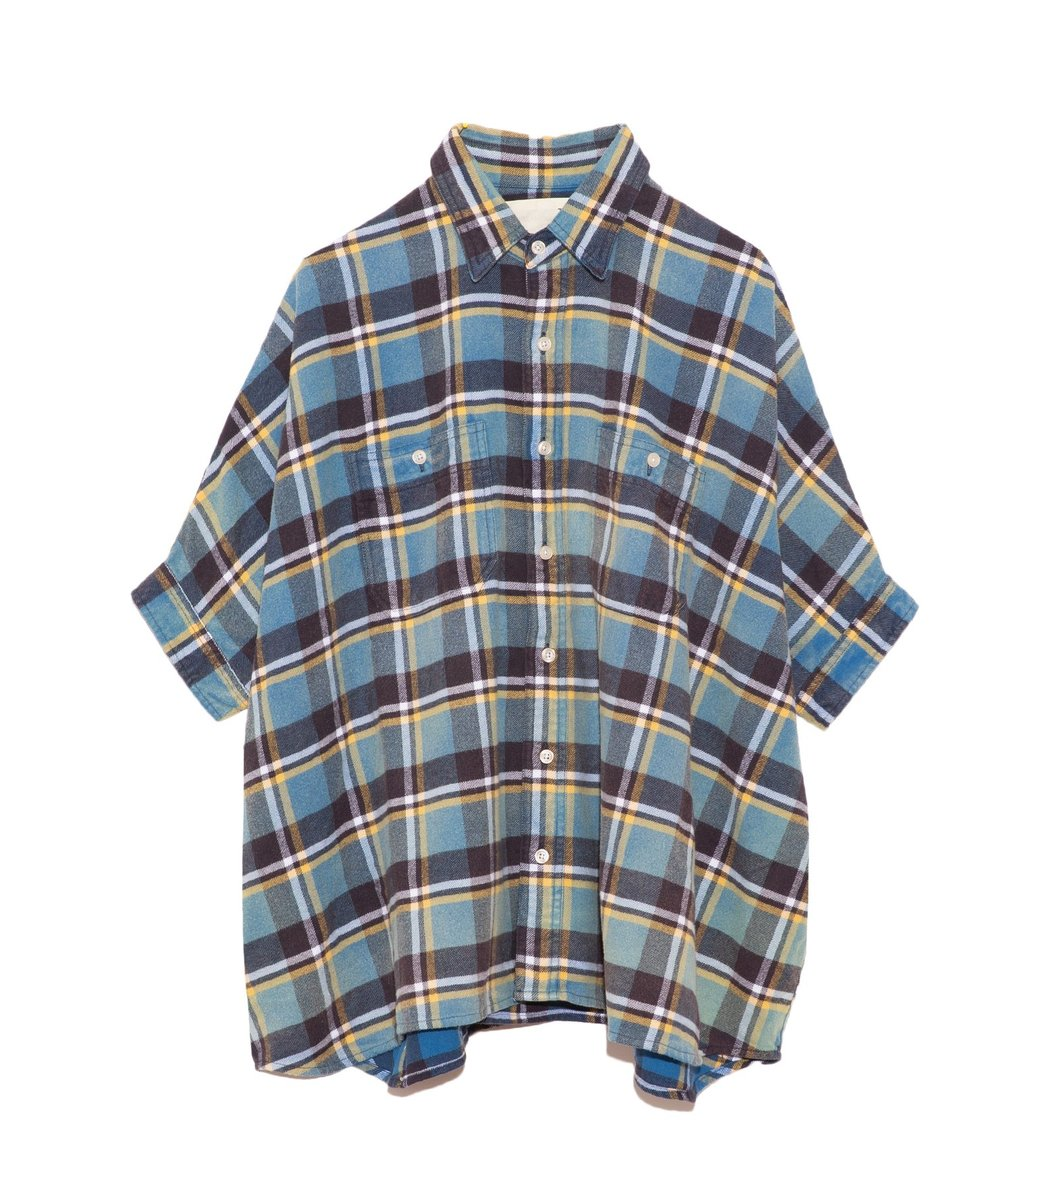 R13 Oversized Boxy Shirt in Blue Plaid